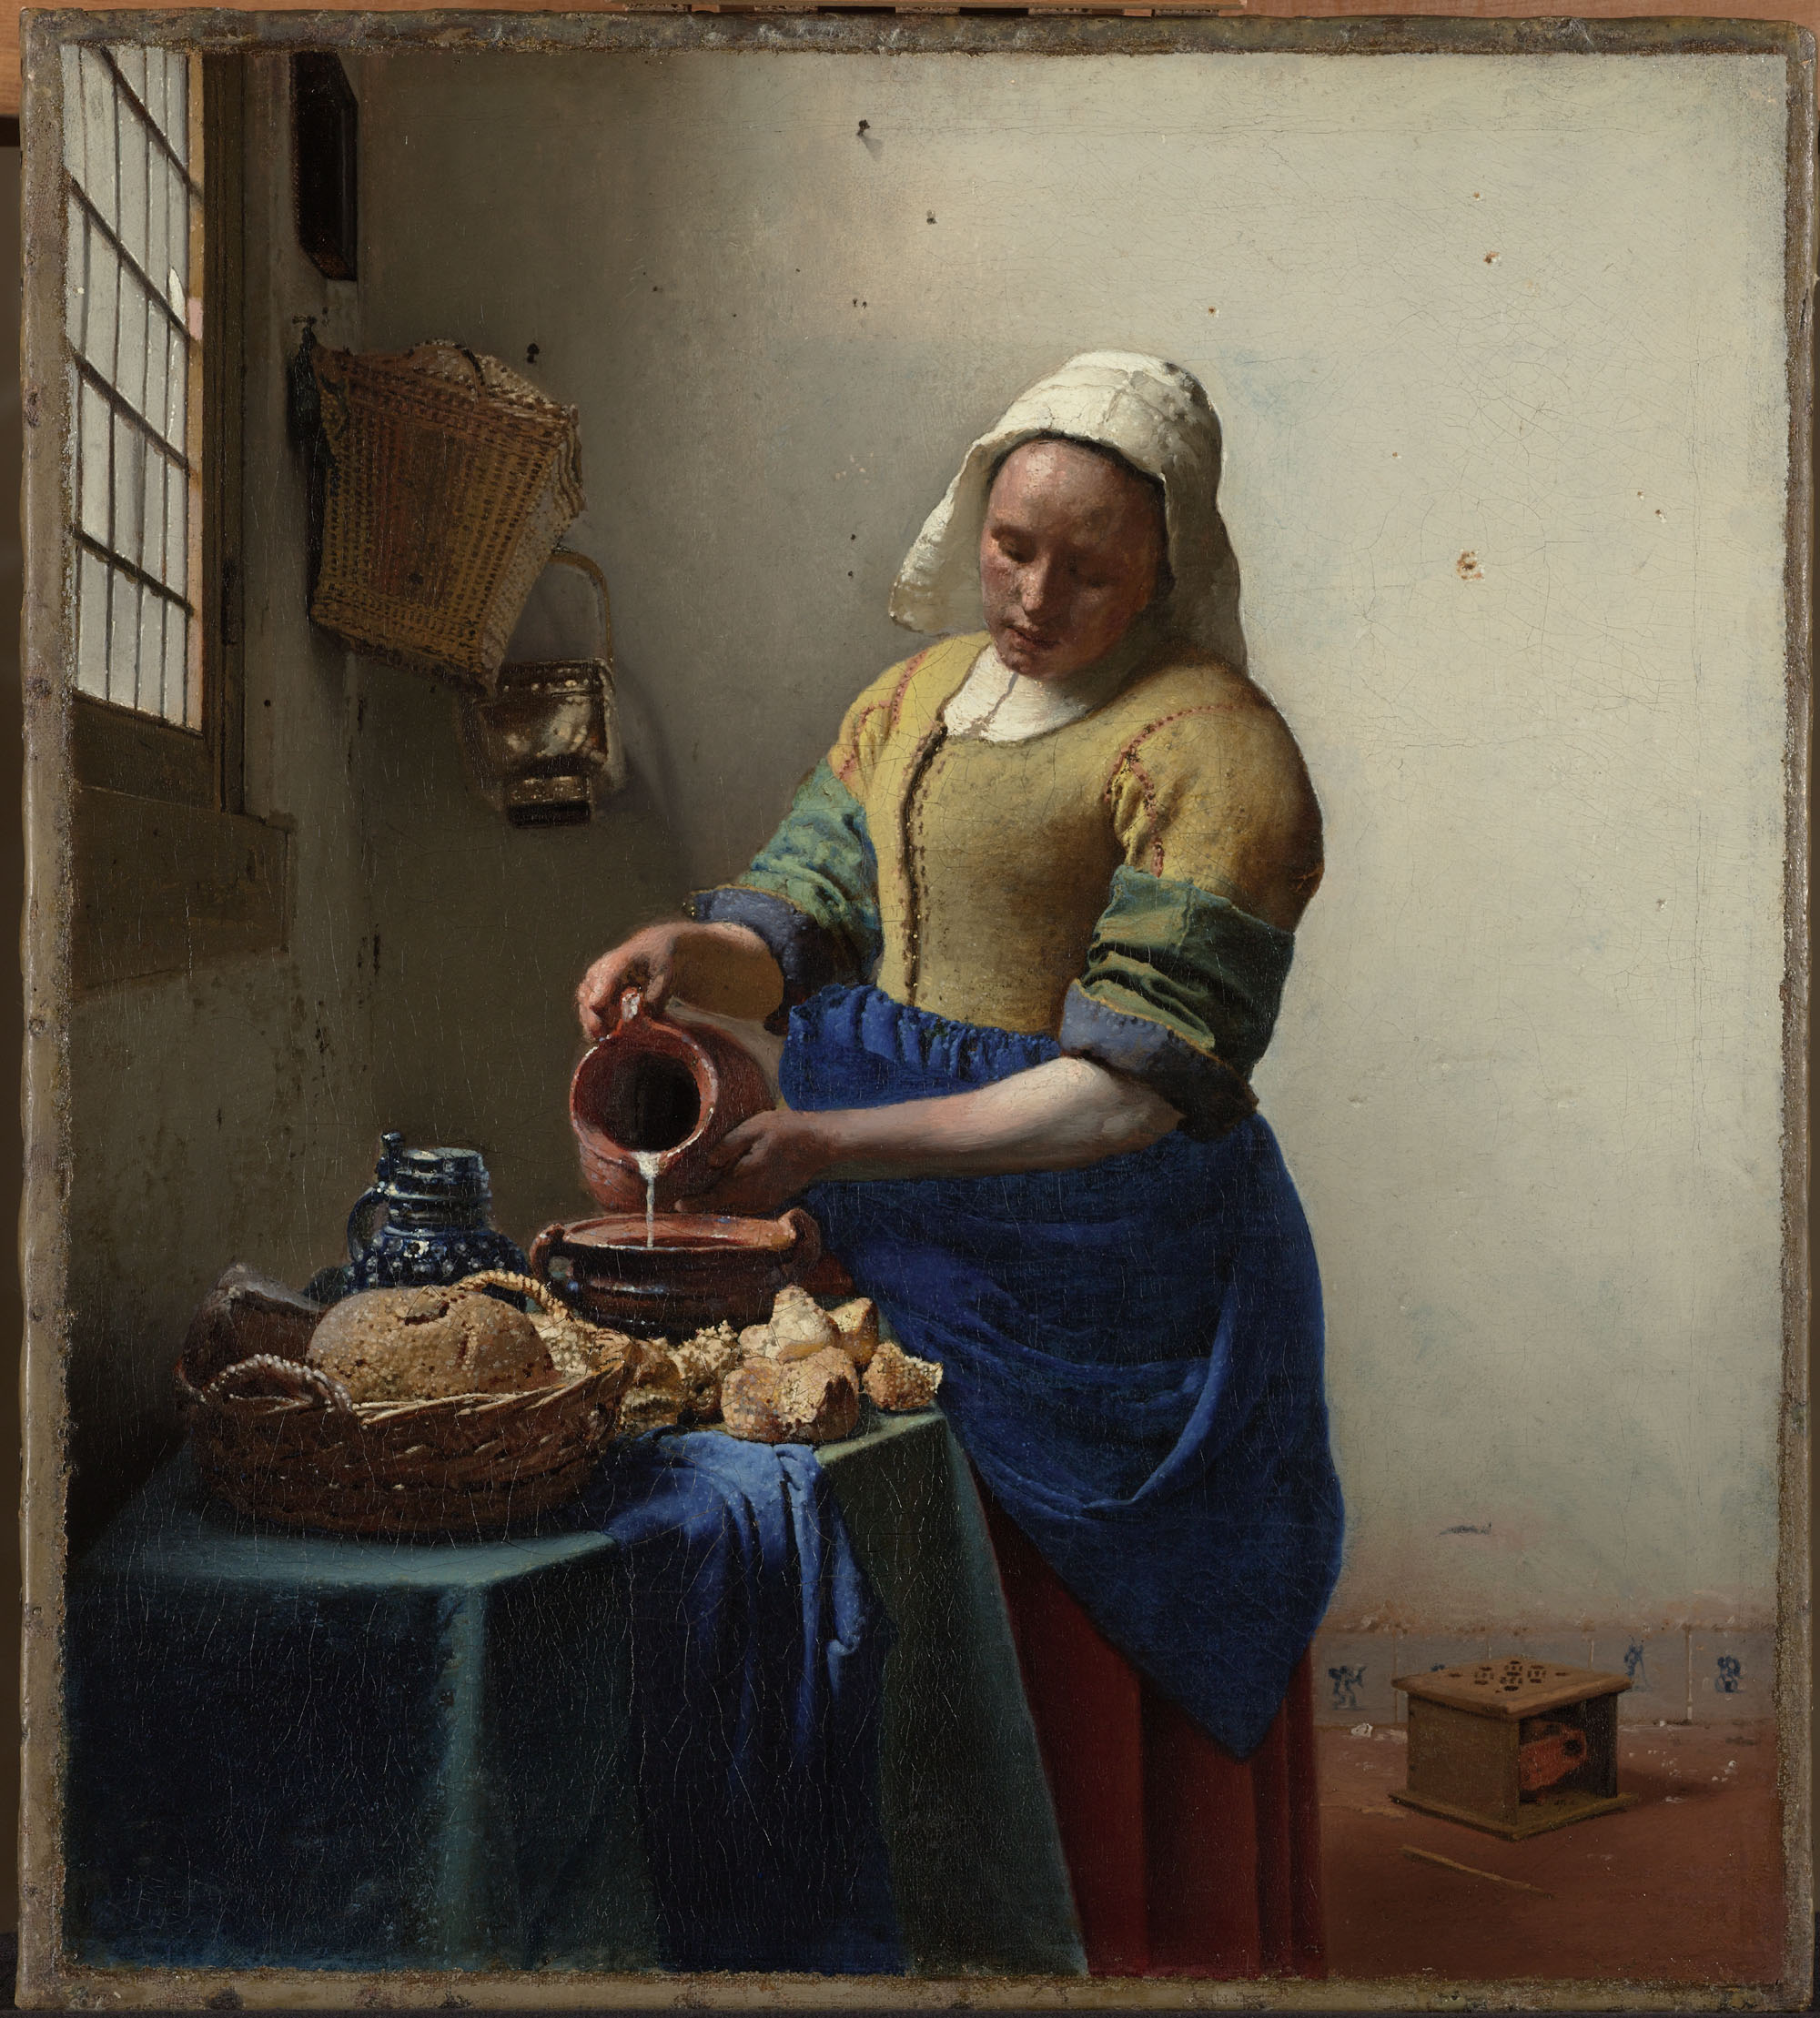 Vermeer's painting The Milkmaid